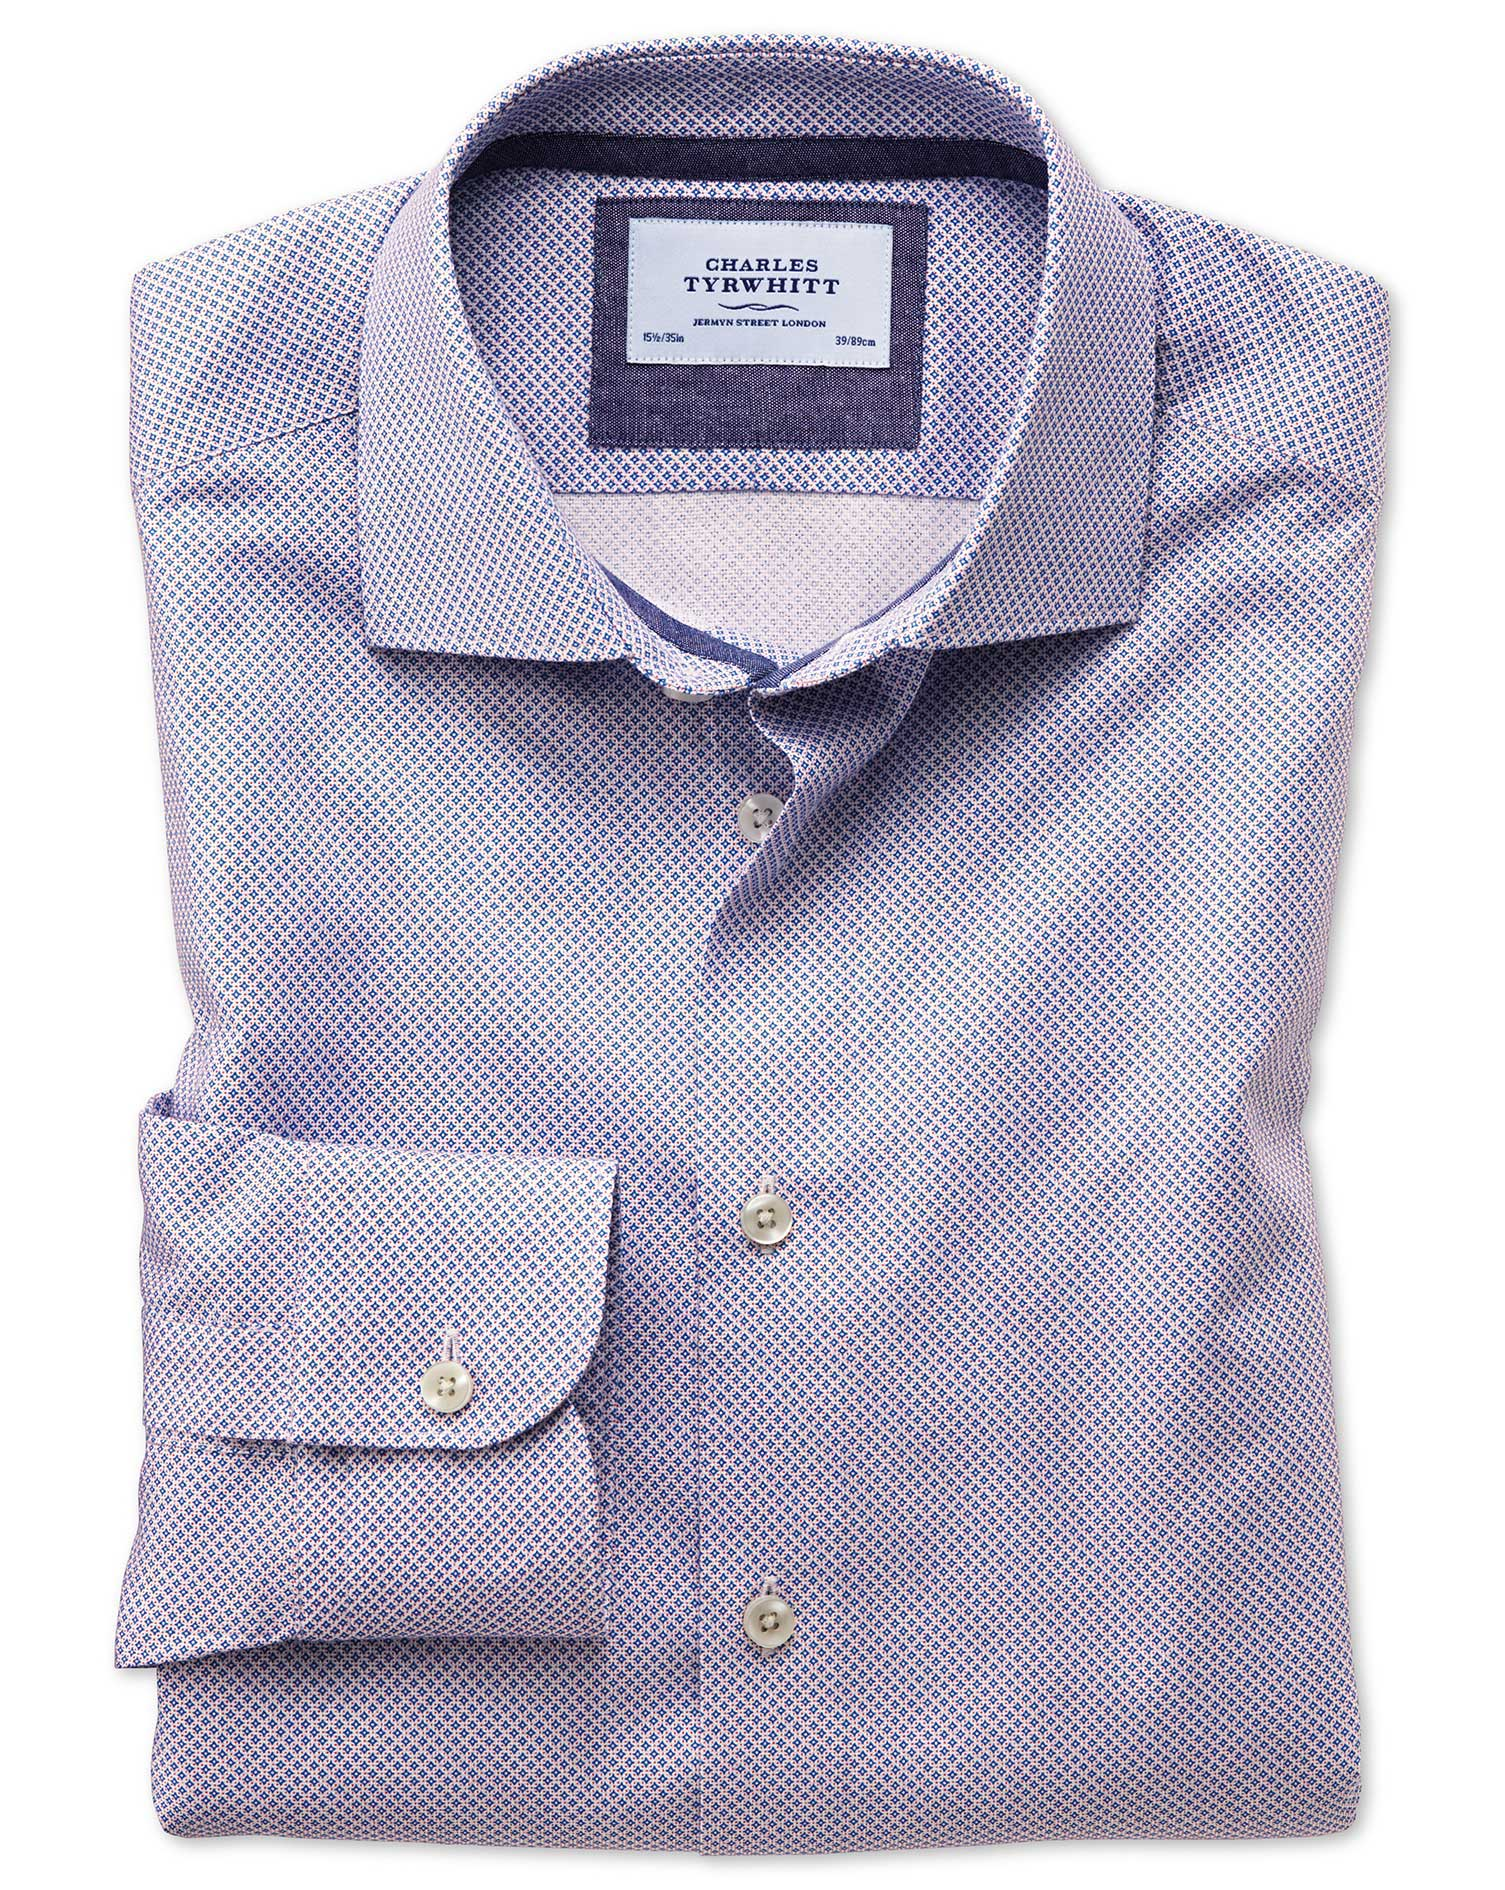 Classic Fit Semi-Cutaway Business Casual Motif Print Red and Blue Egyptian Cotton Formal Shirt Singl